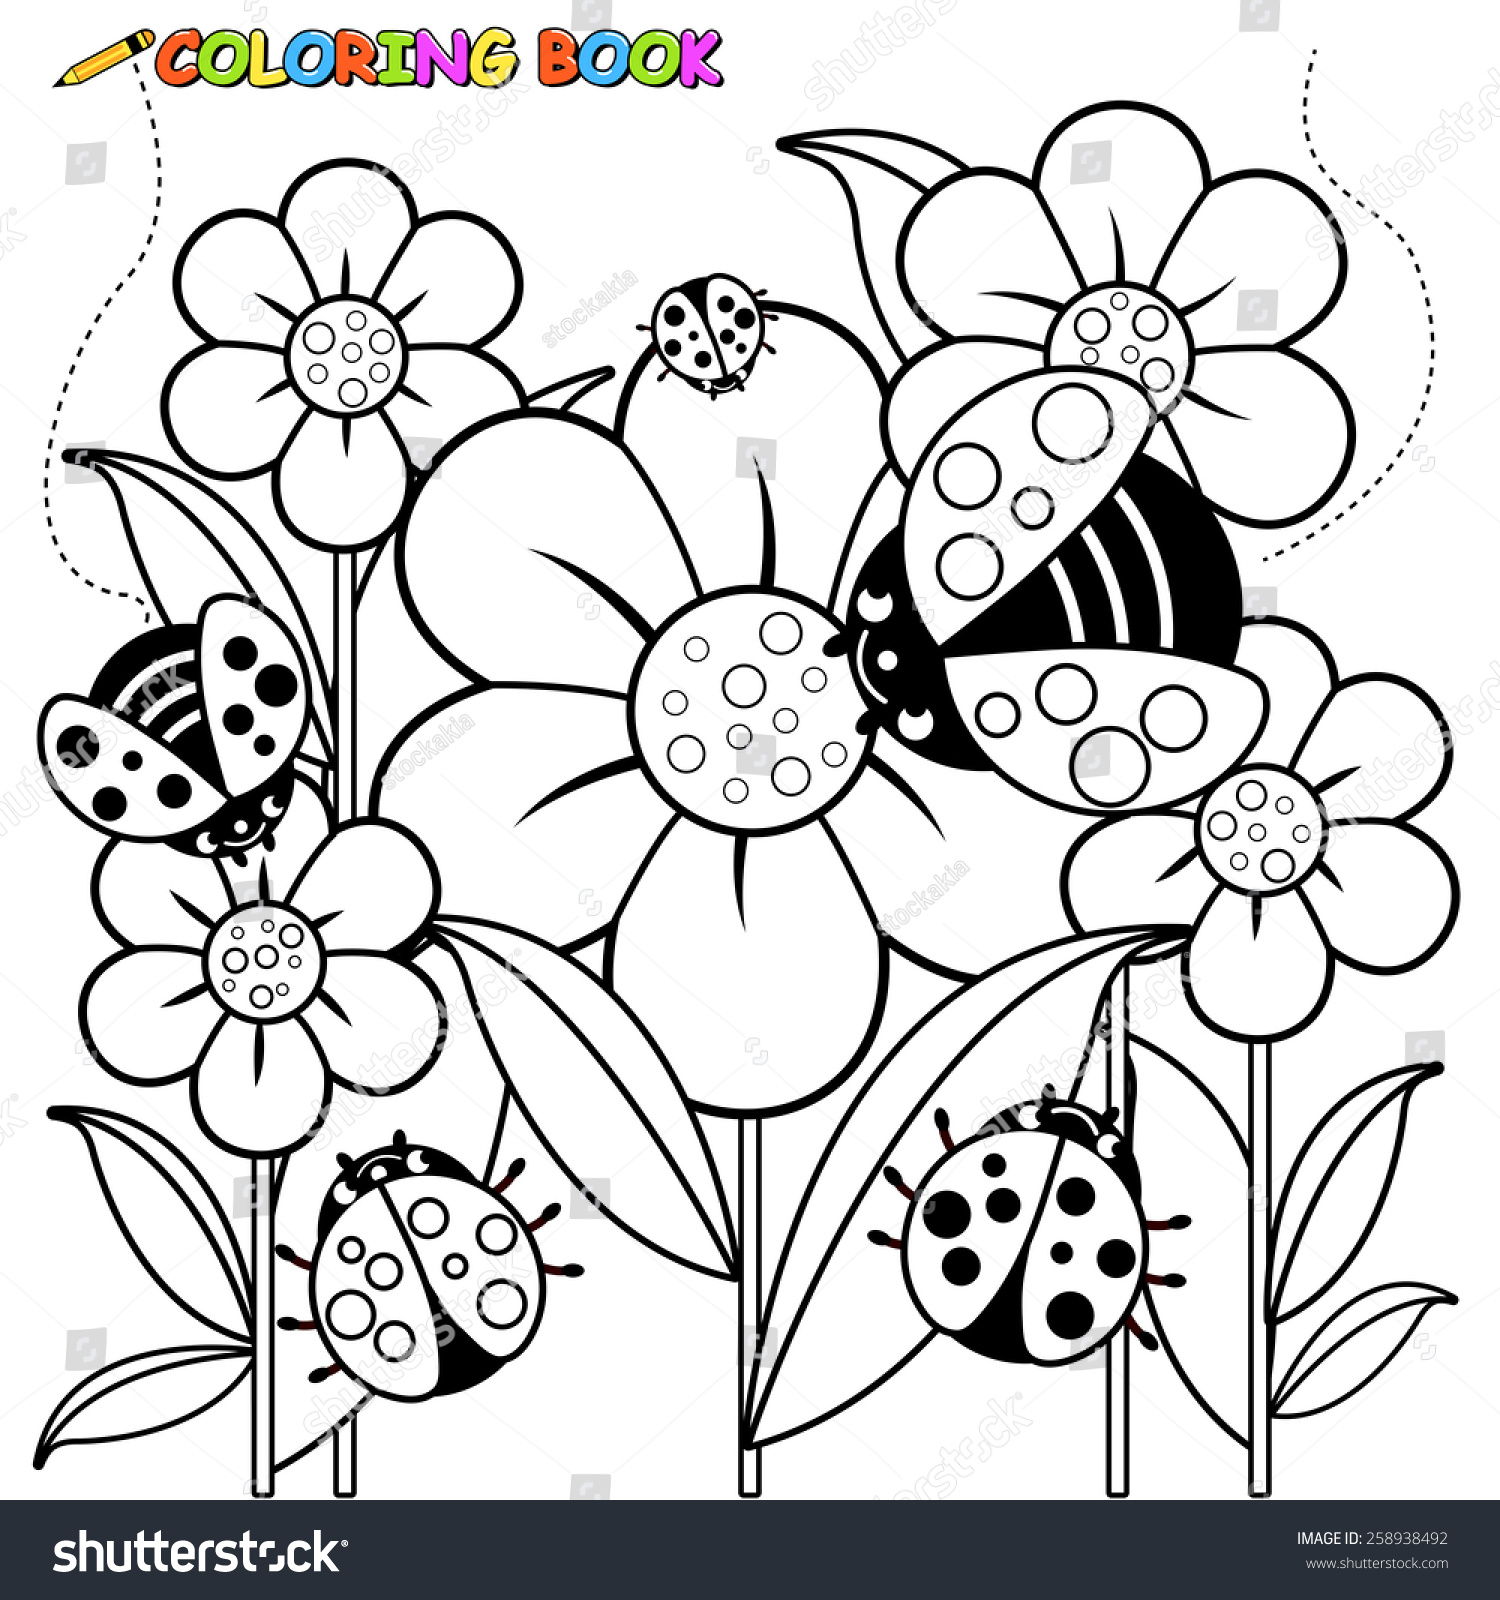 flying ladybugs coloring pages - photo#17